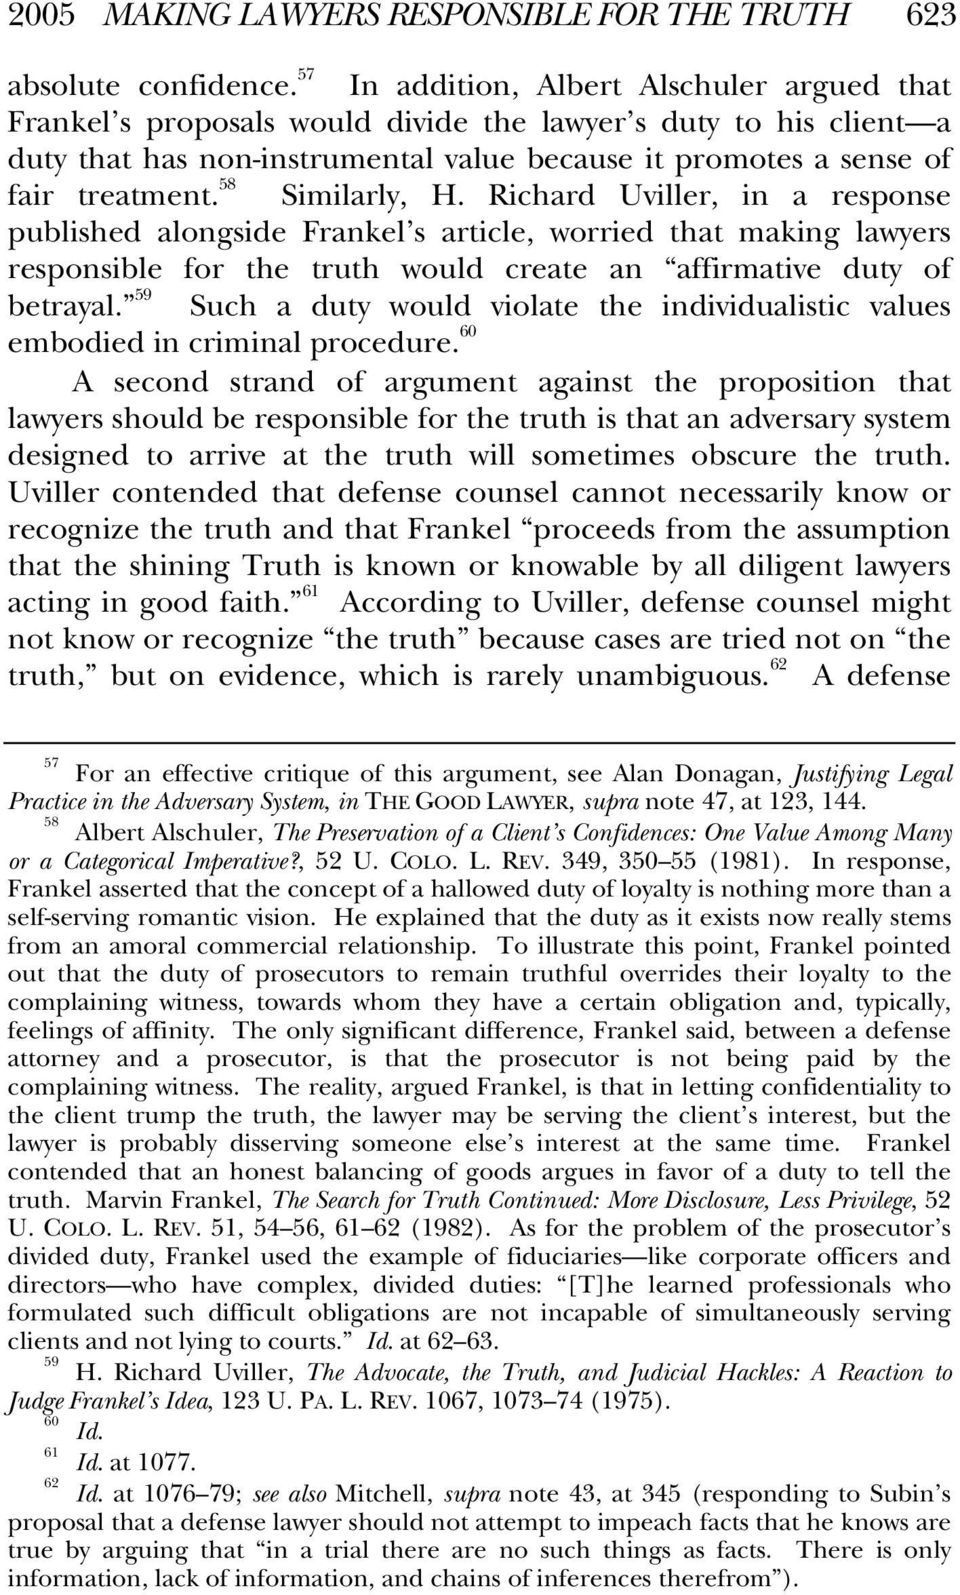 58 Similarly, H. Richard Uviller, in a response published alongside Frankel s article, worried that making lawyers responsible for the truth would create an affirmative duty of betrayal.